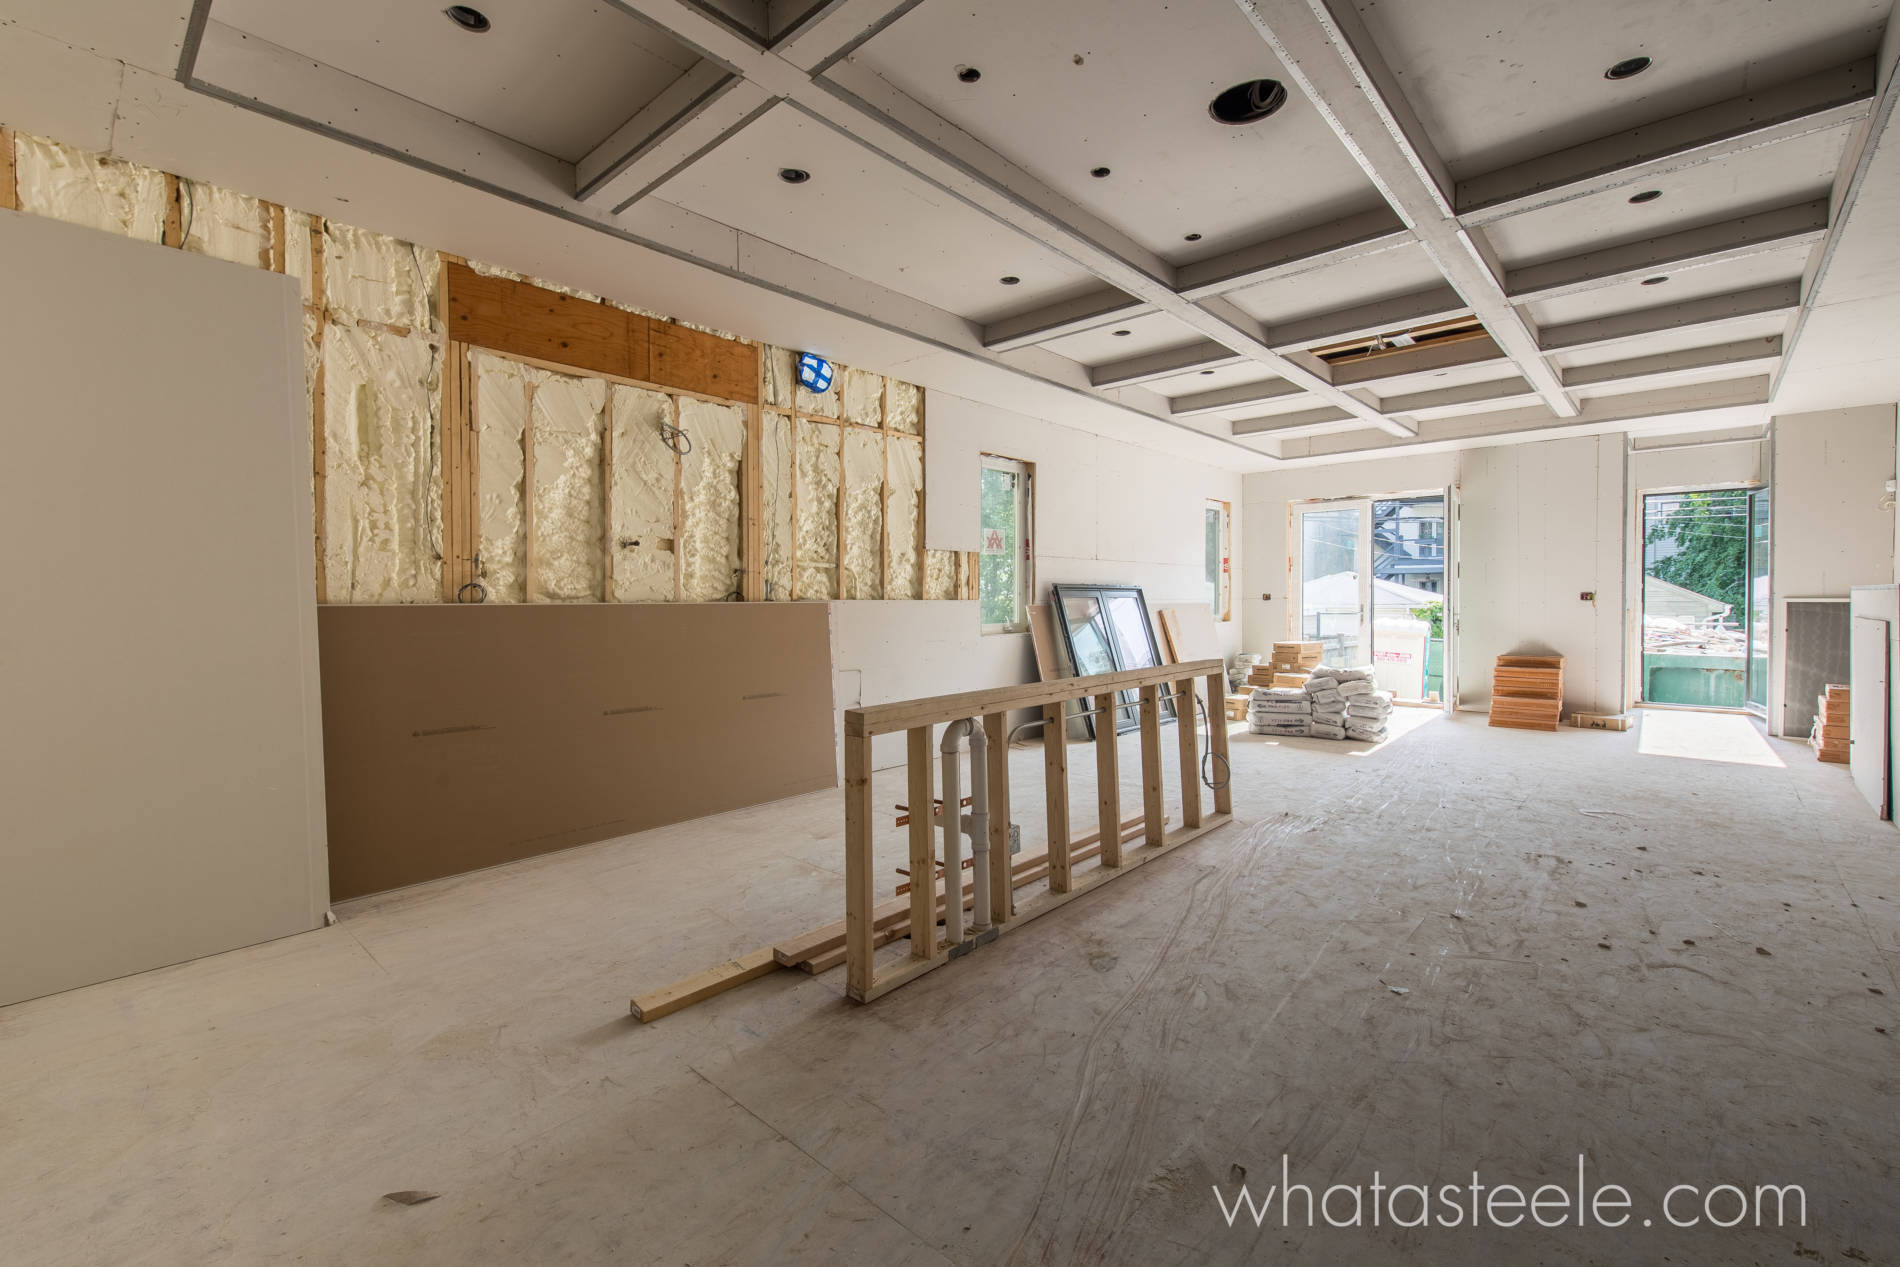 6-15-17 3423 NBell Kitchen North wall Drywall